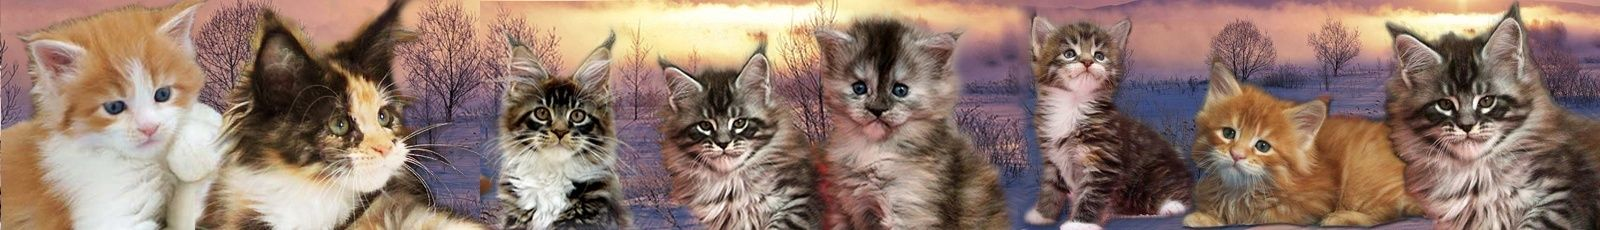 Chatons Maine coons silver, tortie smoke, brown, brown et blanc